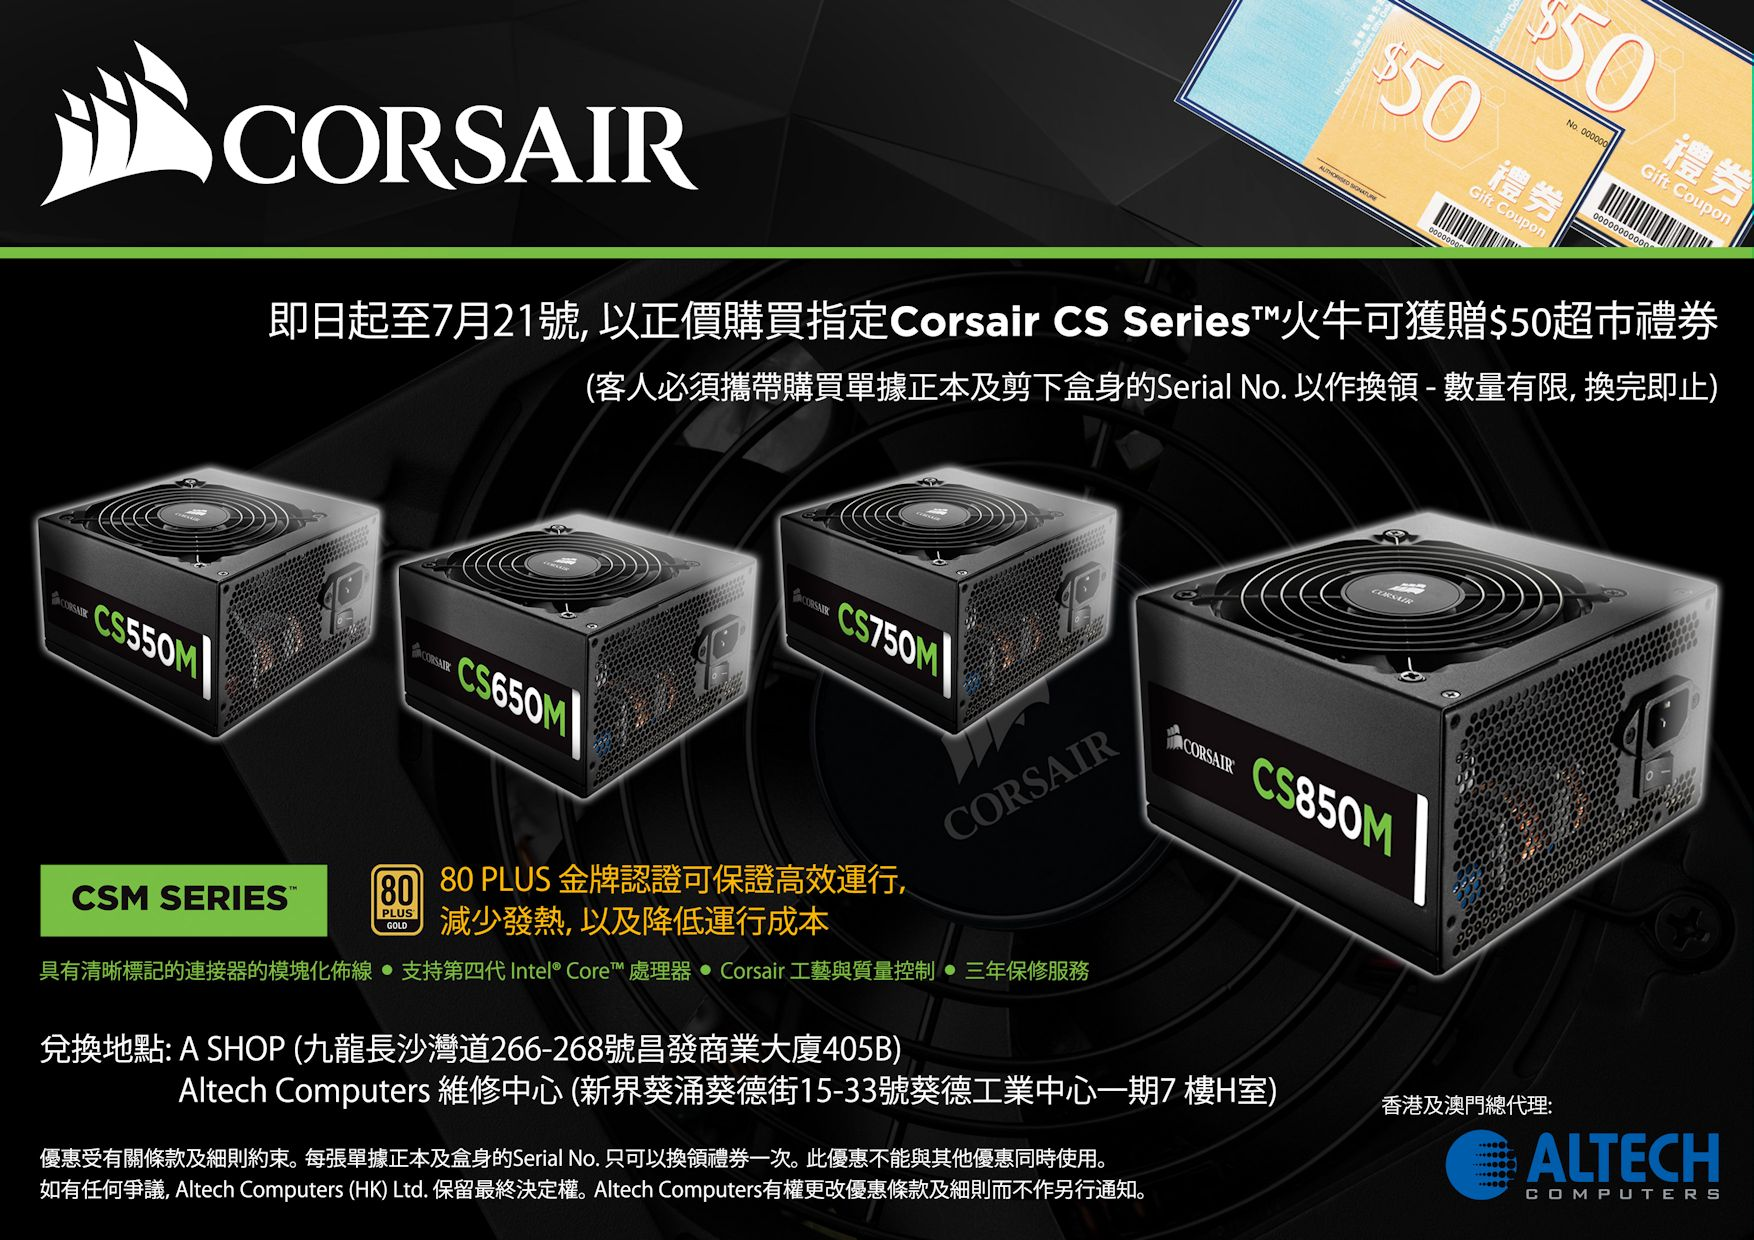 Corsair Summer Promotion